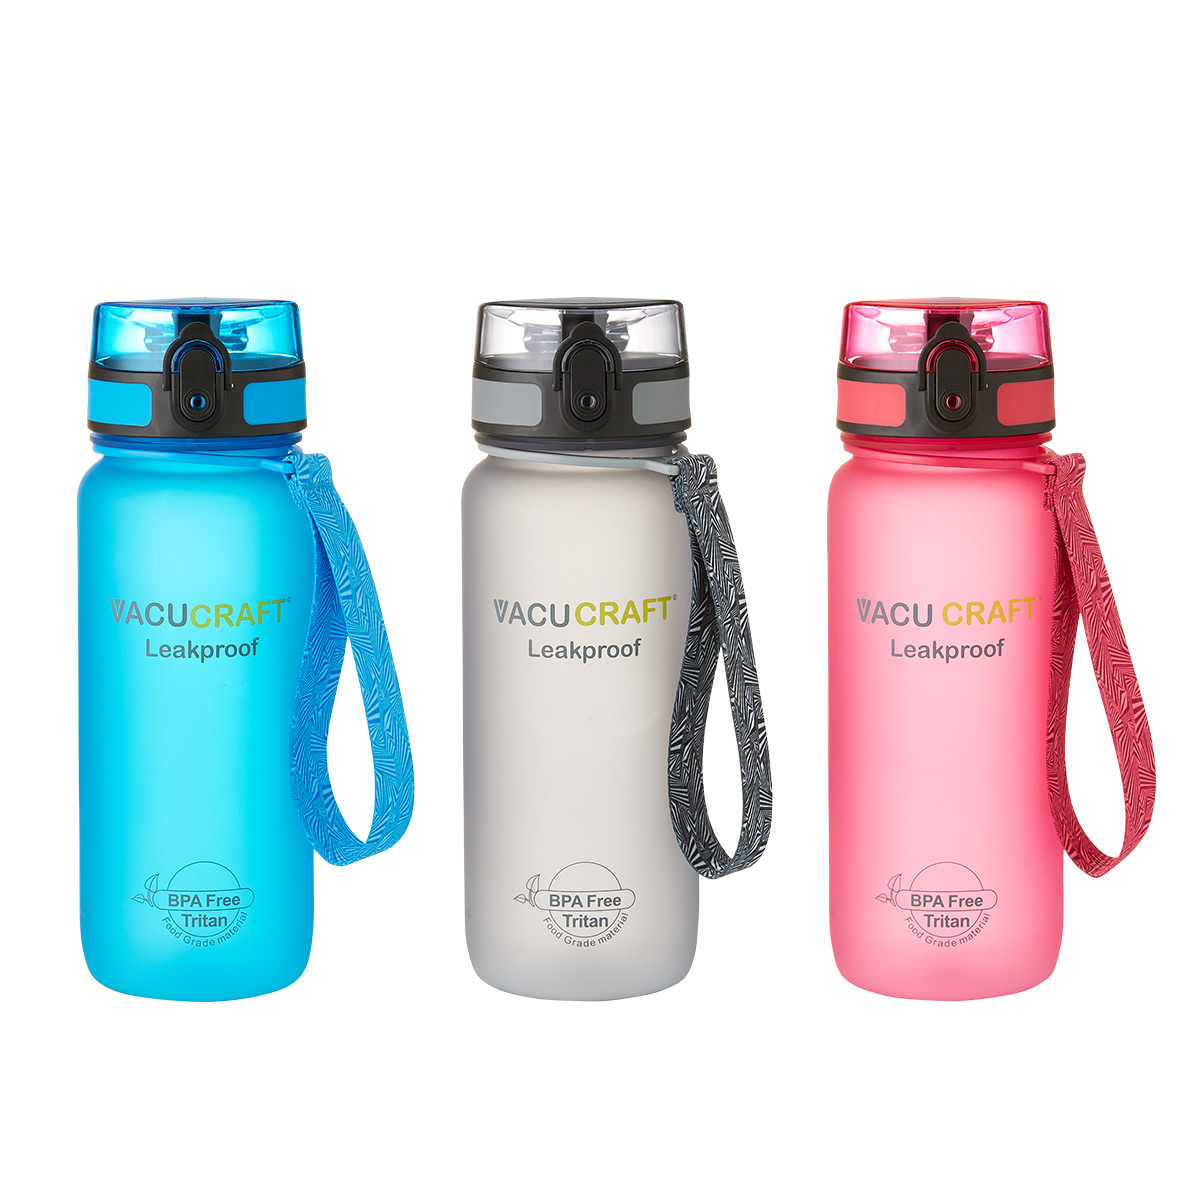 22 oz. Vacucraft Water Bottles